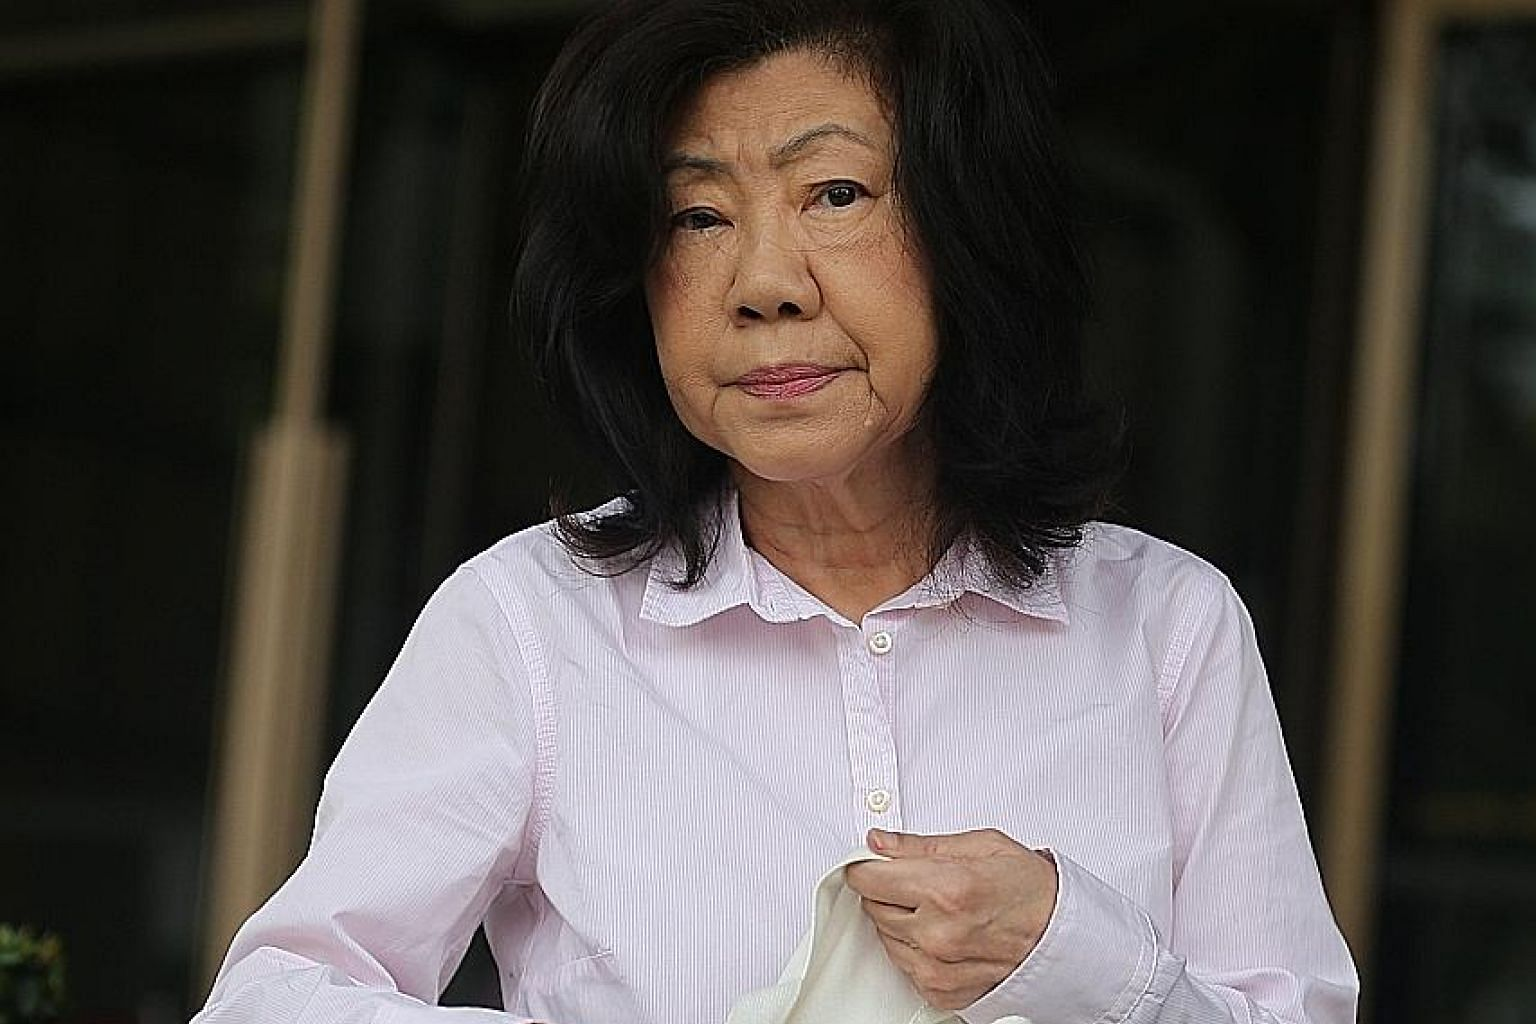 The family of Mr Ng Kong Yeam (above) alleged that Madam Kay Swee Pin (left) had filled in a pre-signed form to transfer his shareholding in SA Tours' parent company Natwest Holdings without his knowledge and consent, transferring to herself the 799,